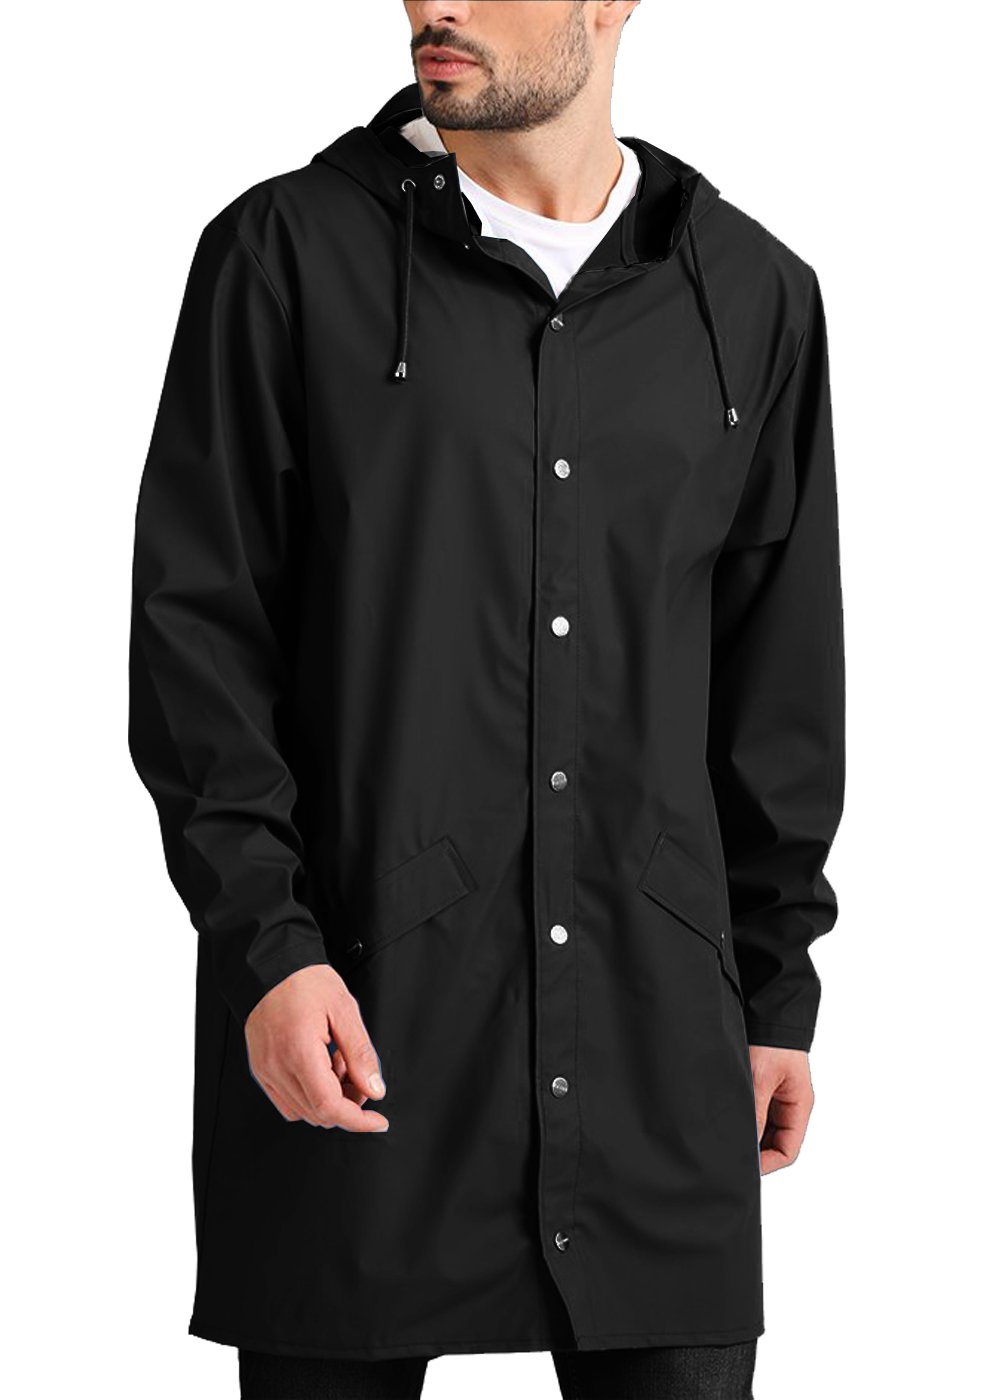 COOFANDY Men's Lightweight Waterproof Rain Jacket Packable Outdoor Hooded Long Raincoat,Black,X-Large